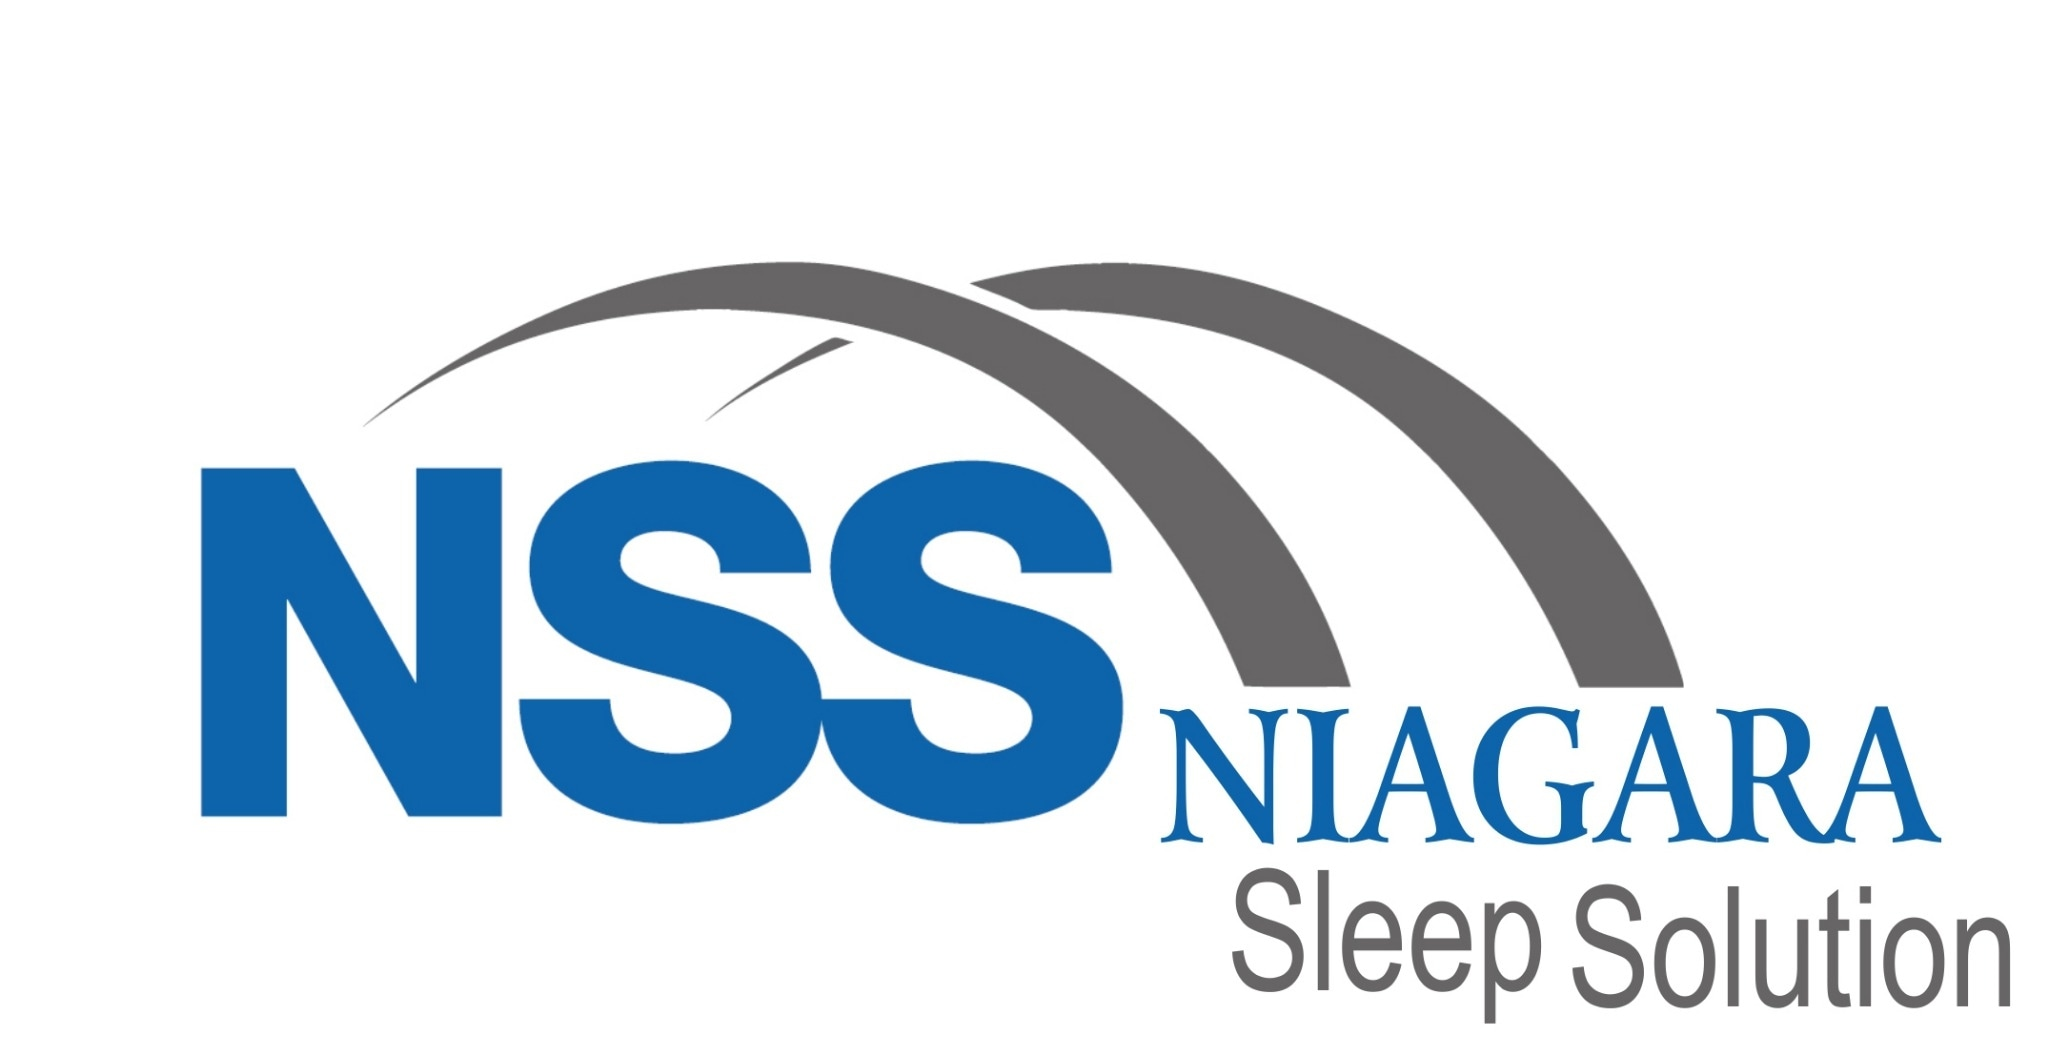 Niagara Sleep Solution promo codes